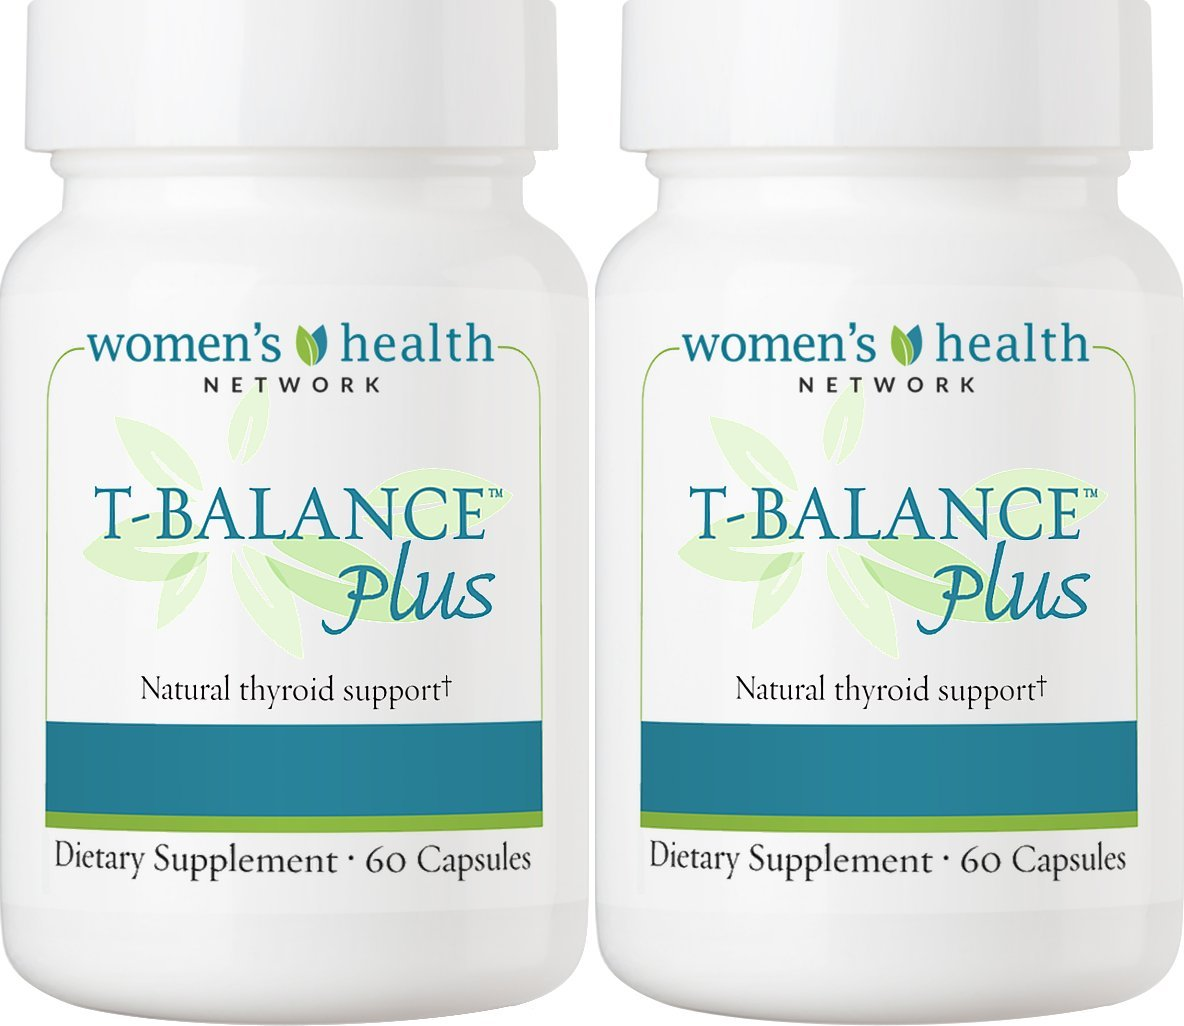 T-Balance Plus Thyroid Support Supplement by Women's Health Network - Natural Supplement for Thyroid Health (2 Bottles) by Women's Health Network